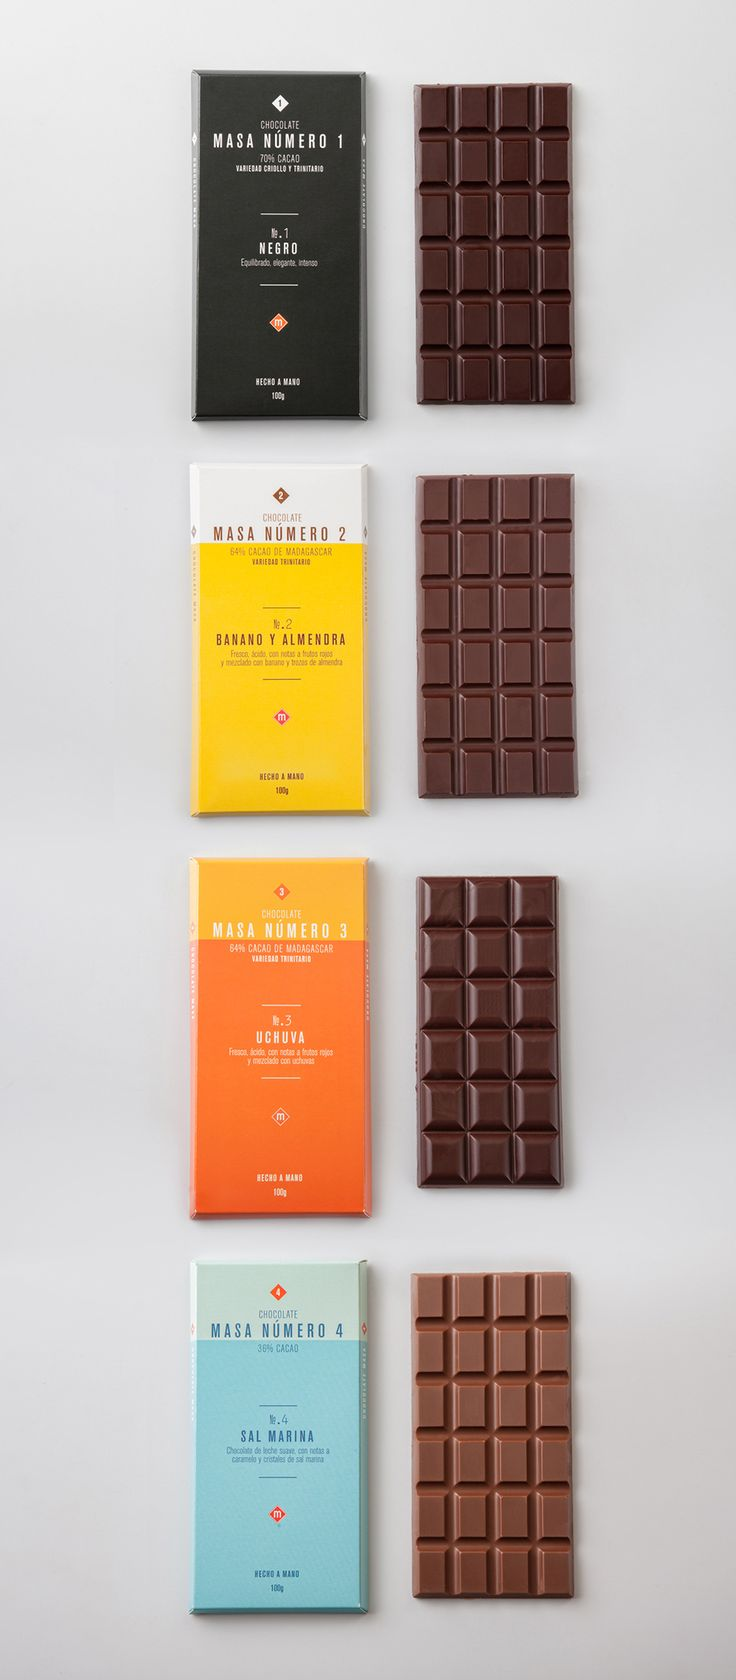 Siegenthaler & Co created this bright and colorful package design for Masa, a Columbian based chocolate company